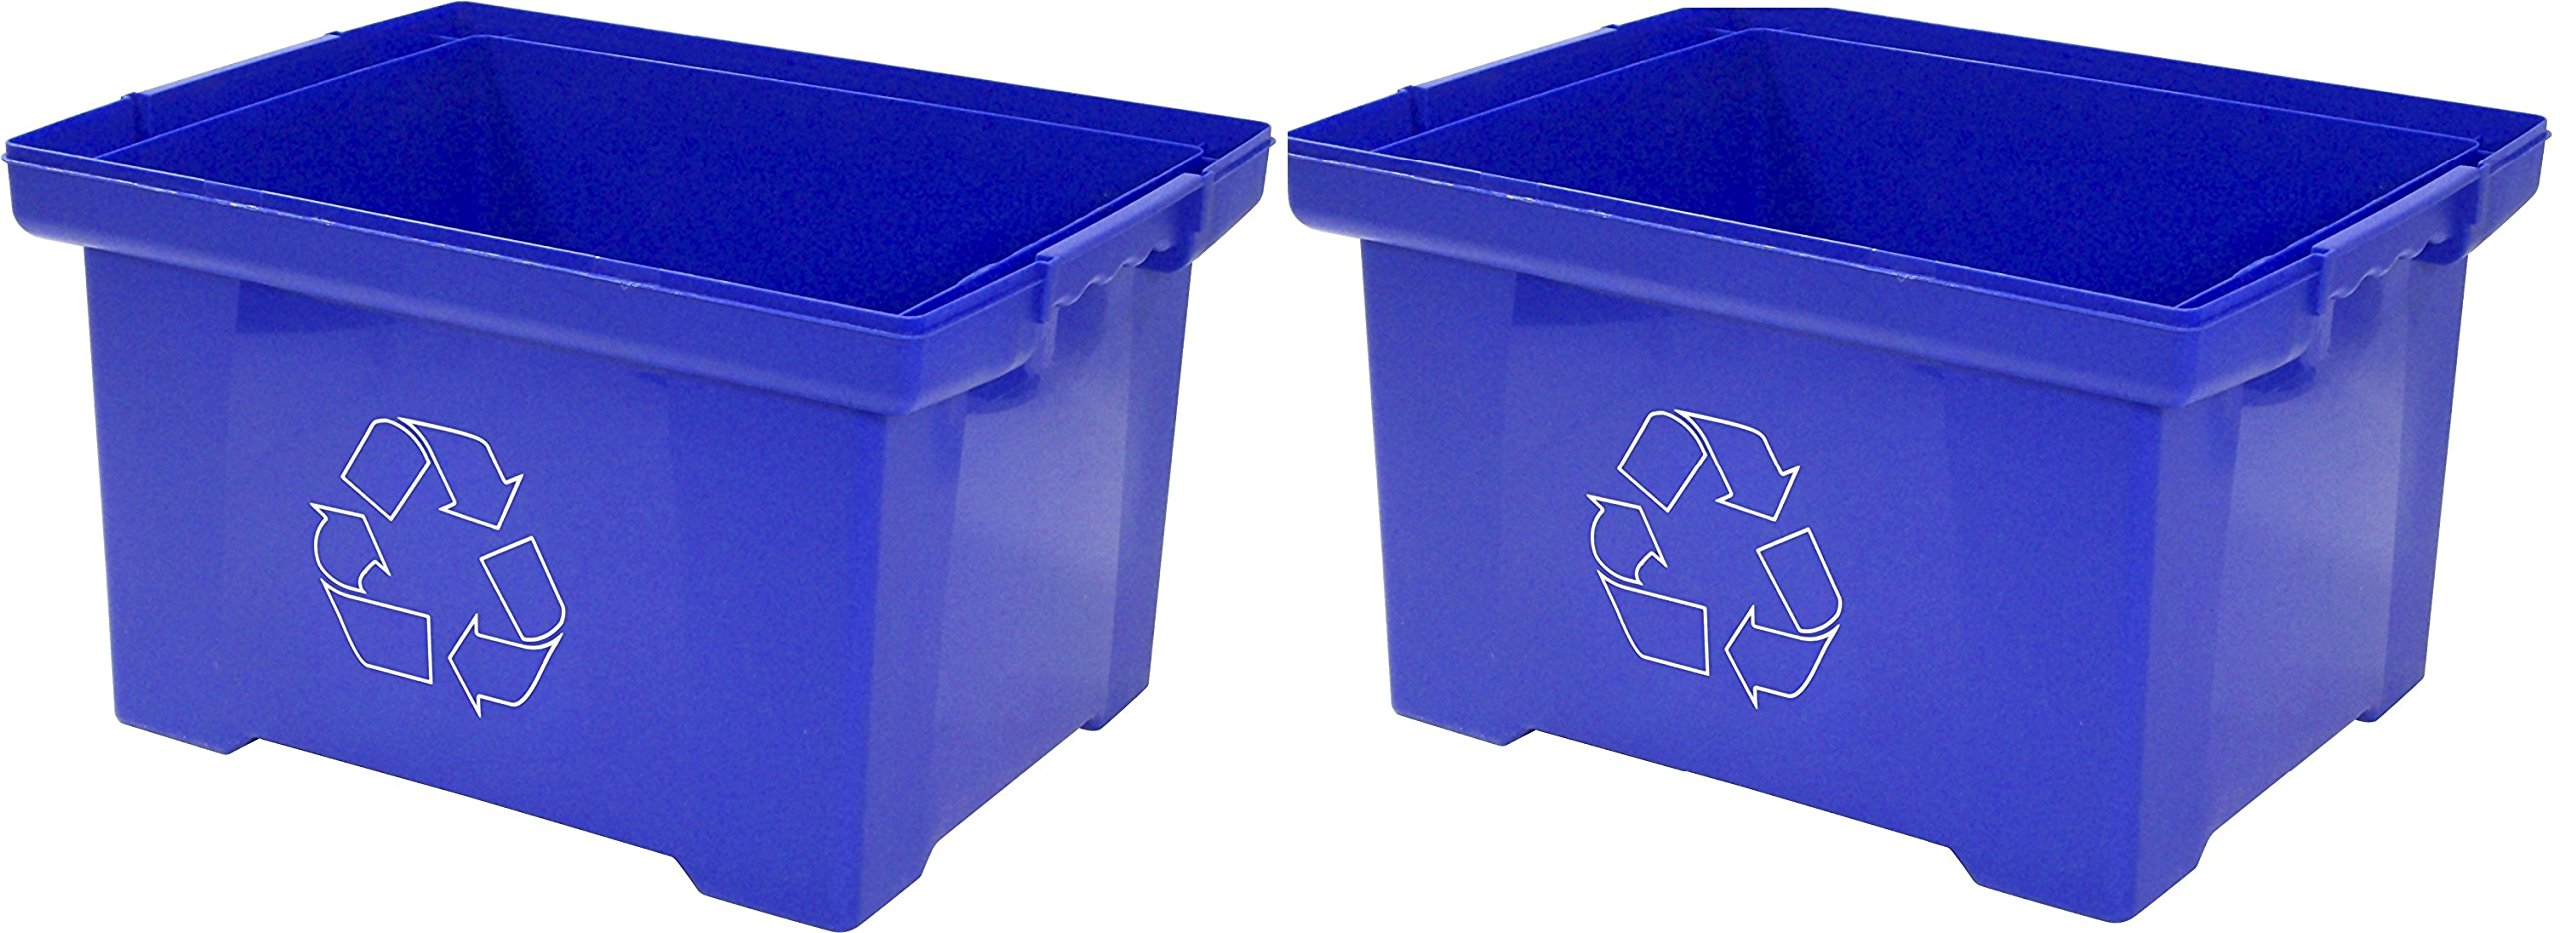 Storex 9 Gallon Recycle Bin, Blue (Pack of 2)